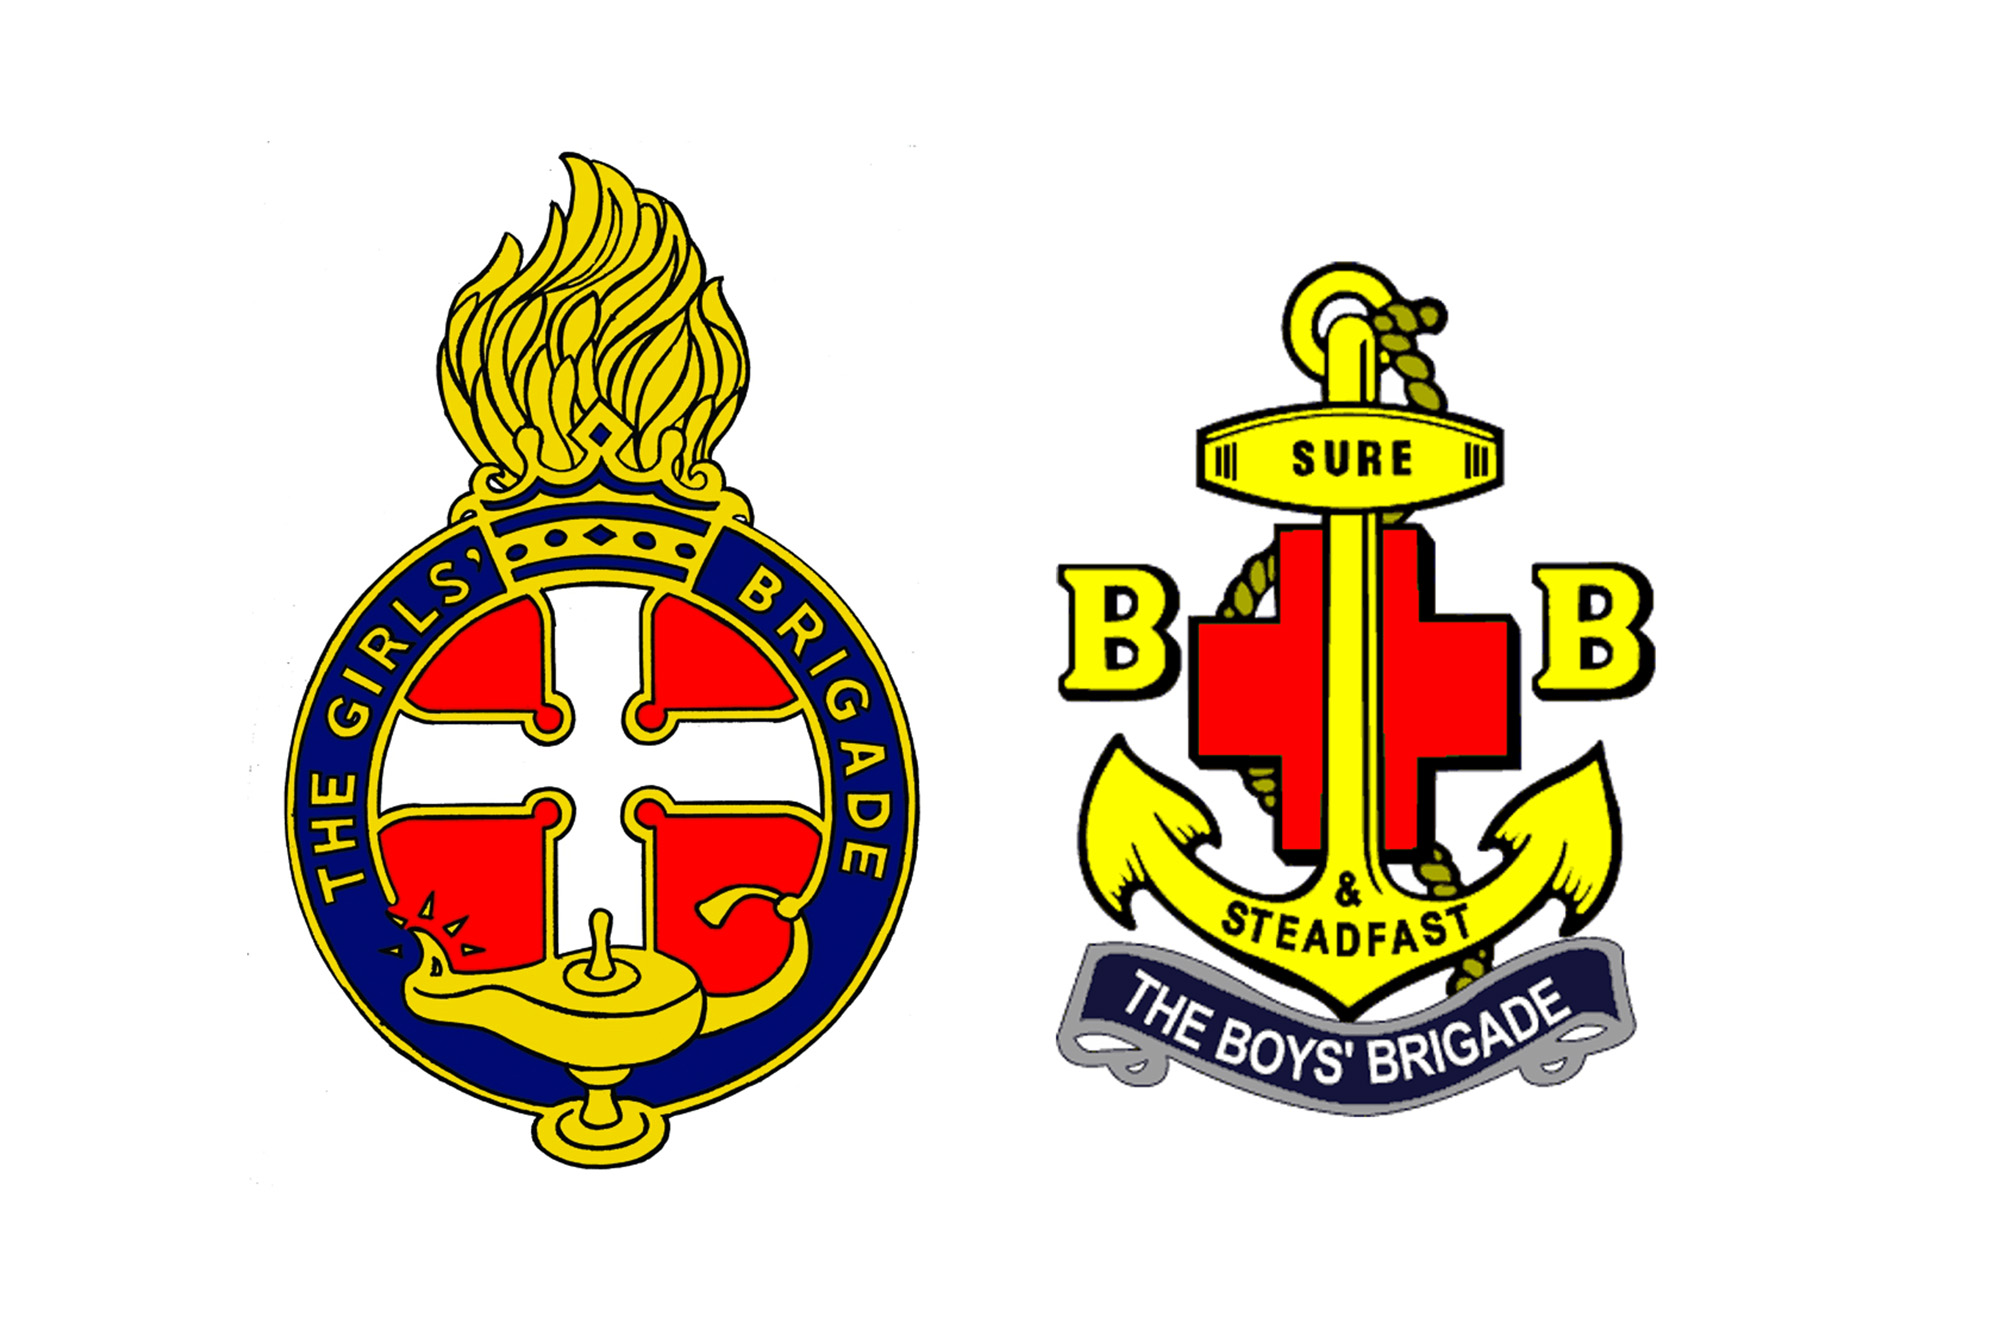 Girls Brigade and Boys' Brigade Return